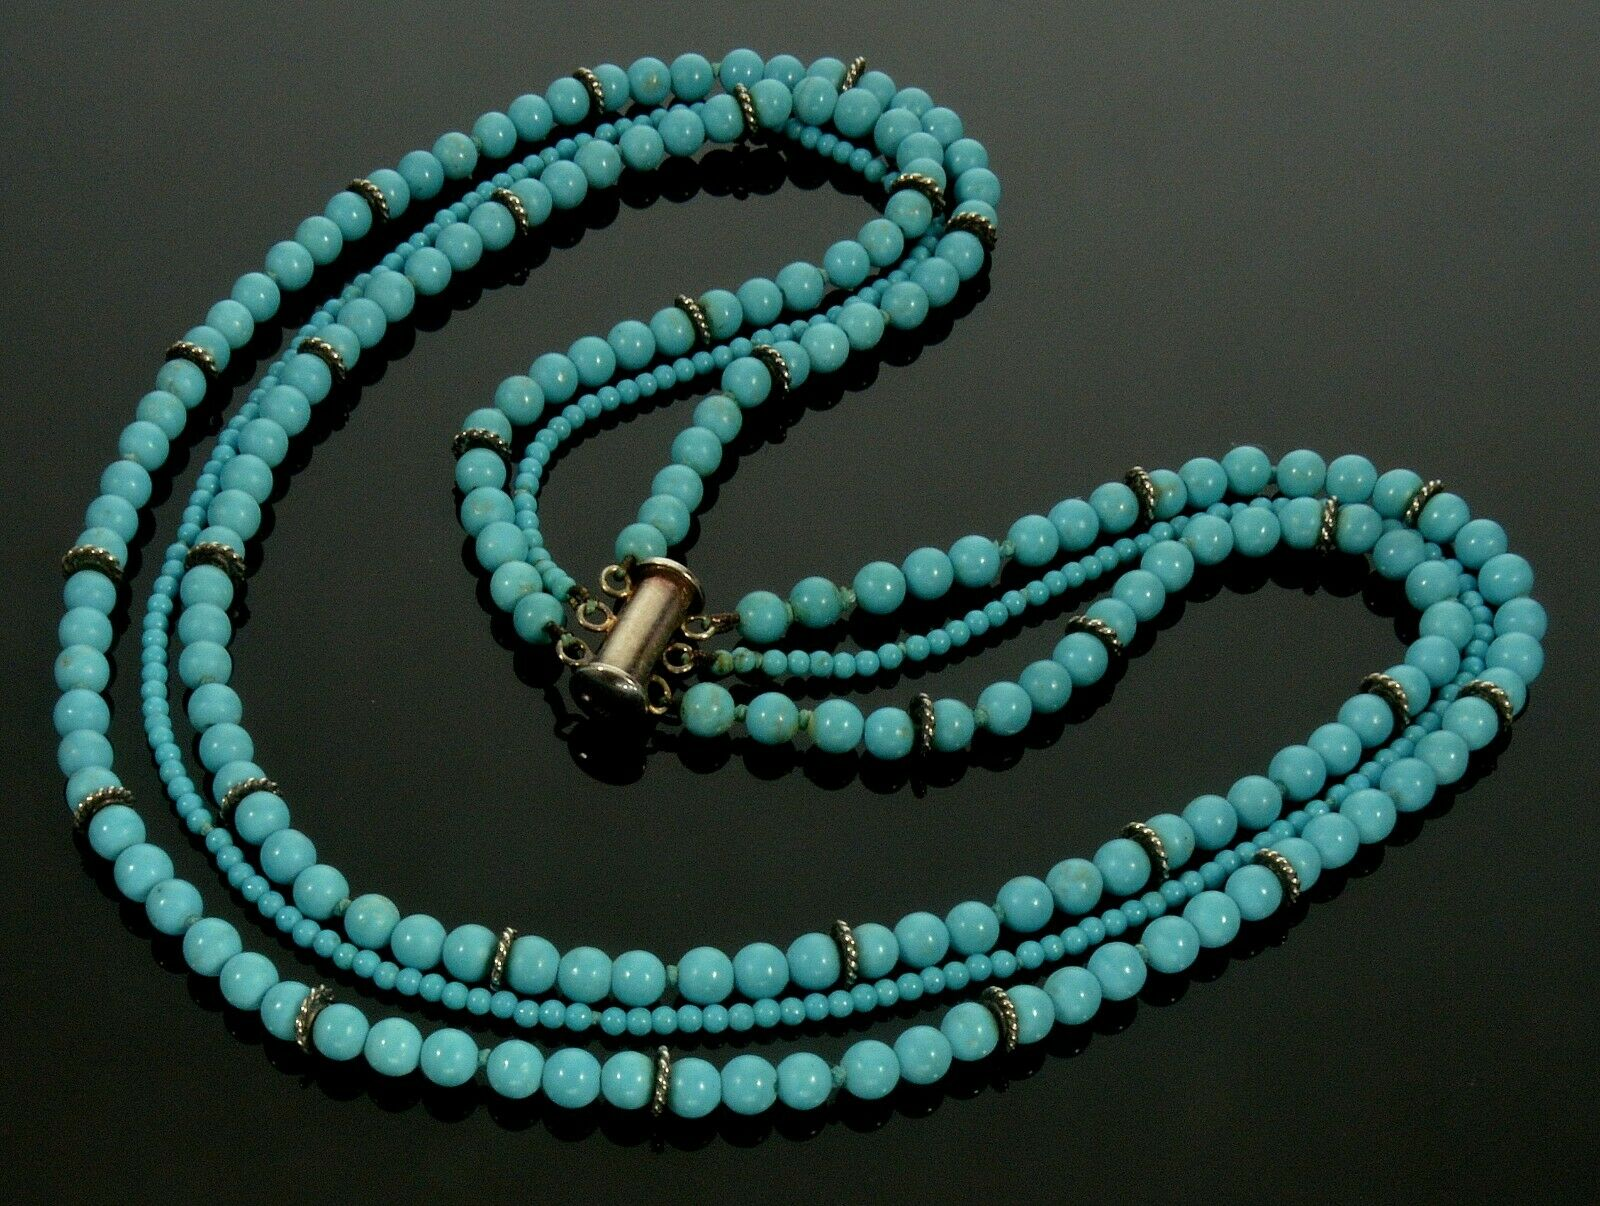 Sterling Silver and Turquoise Beaded 3 Strand Necklace-16-17 long